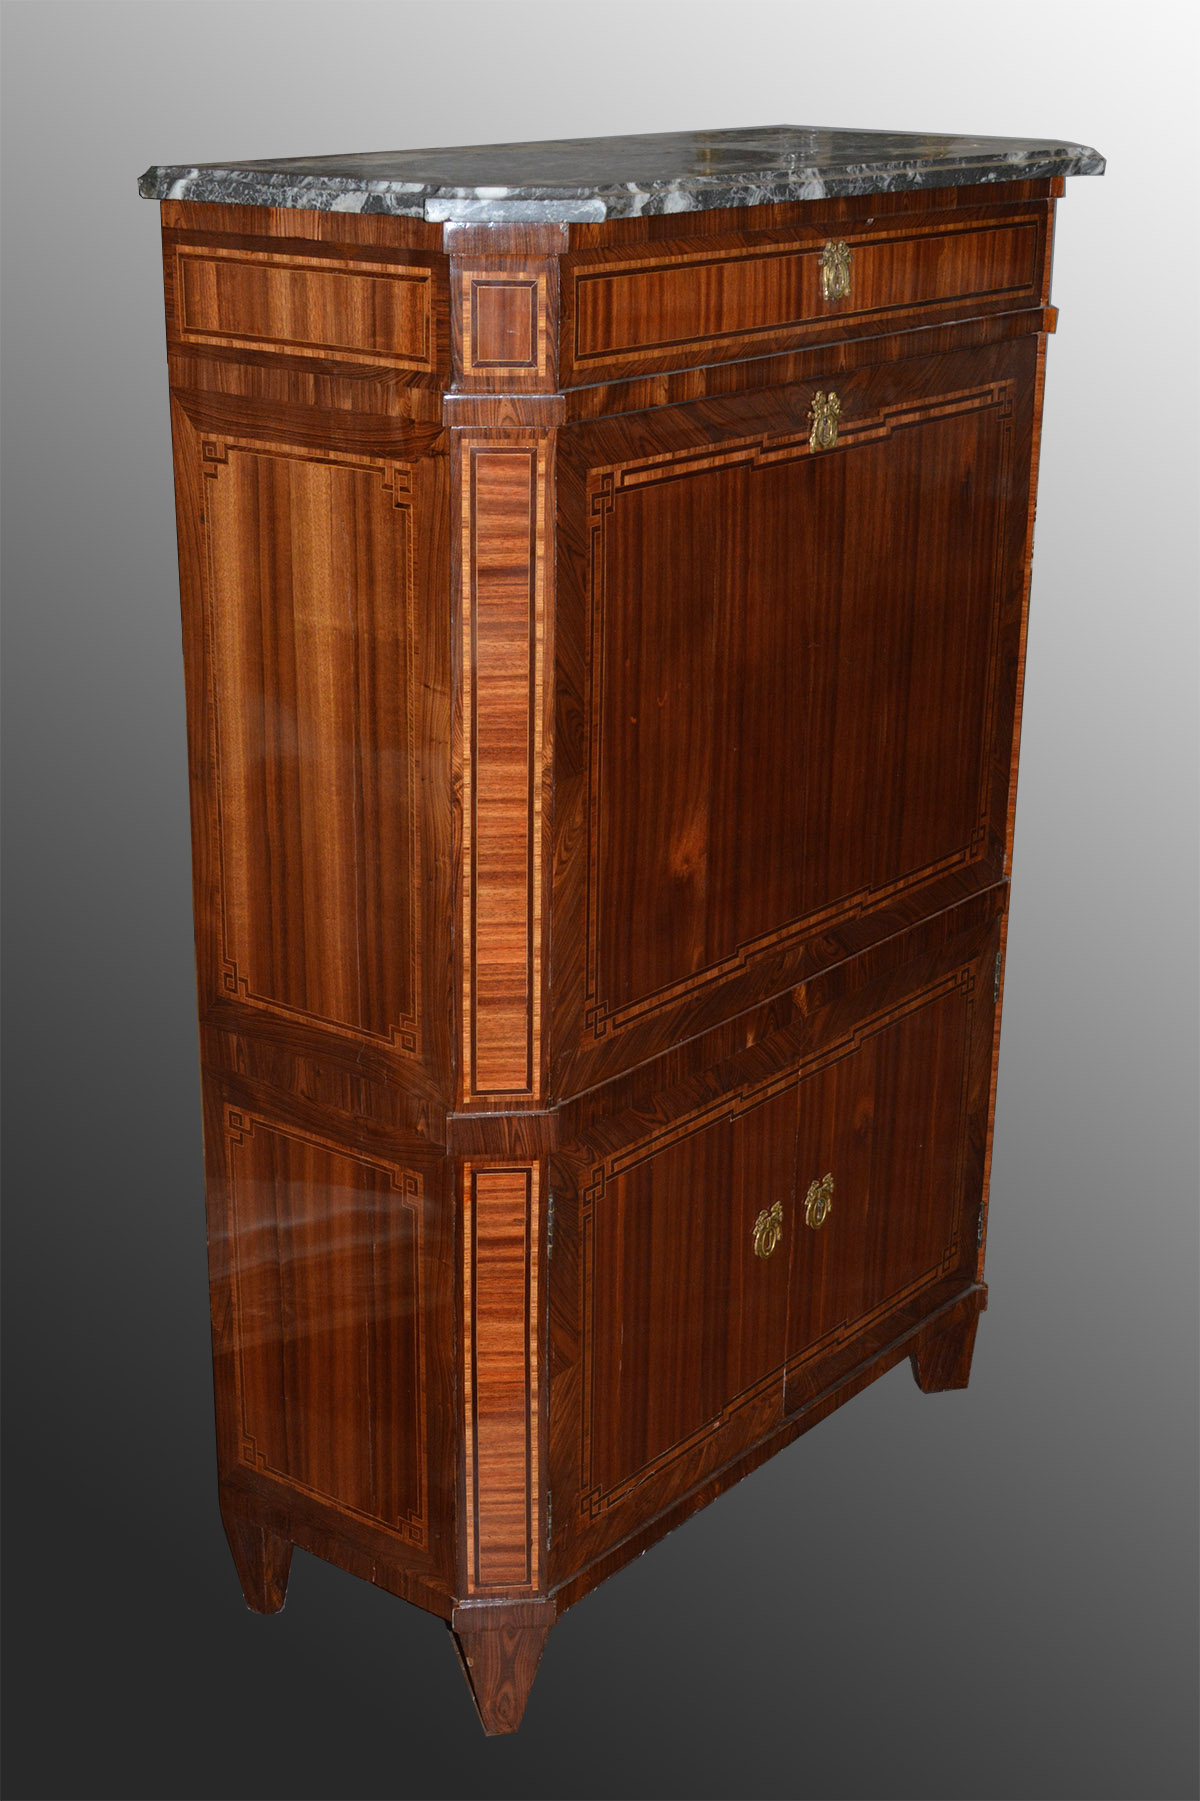 French, Louis XVI period, marquetry-inlaid secretaire abattant